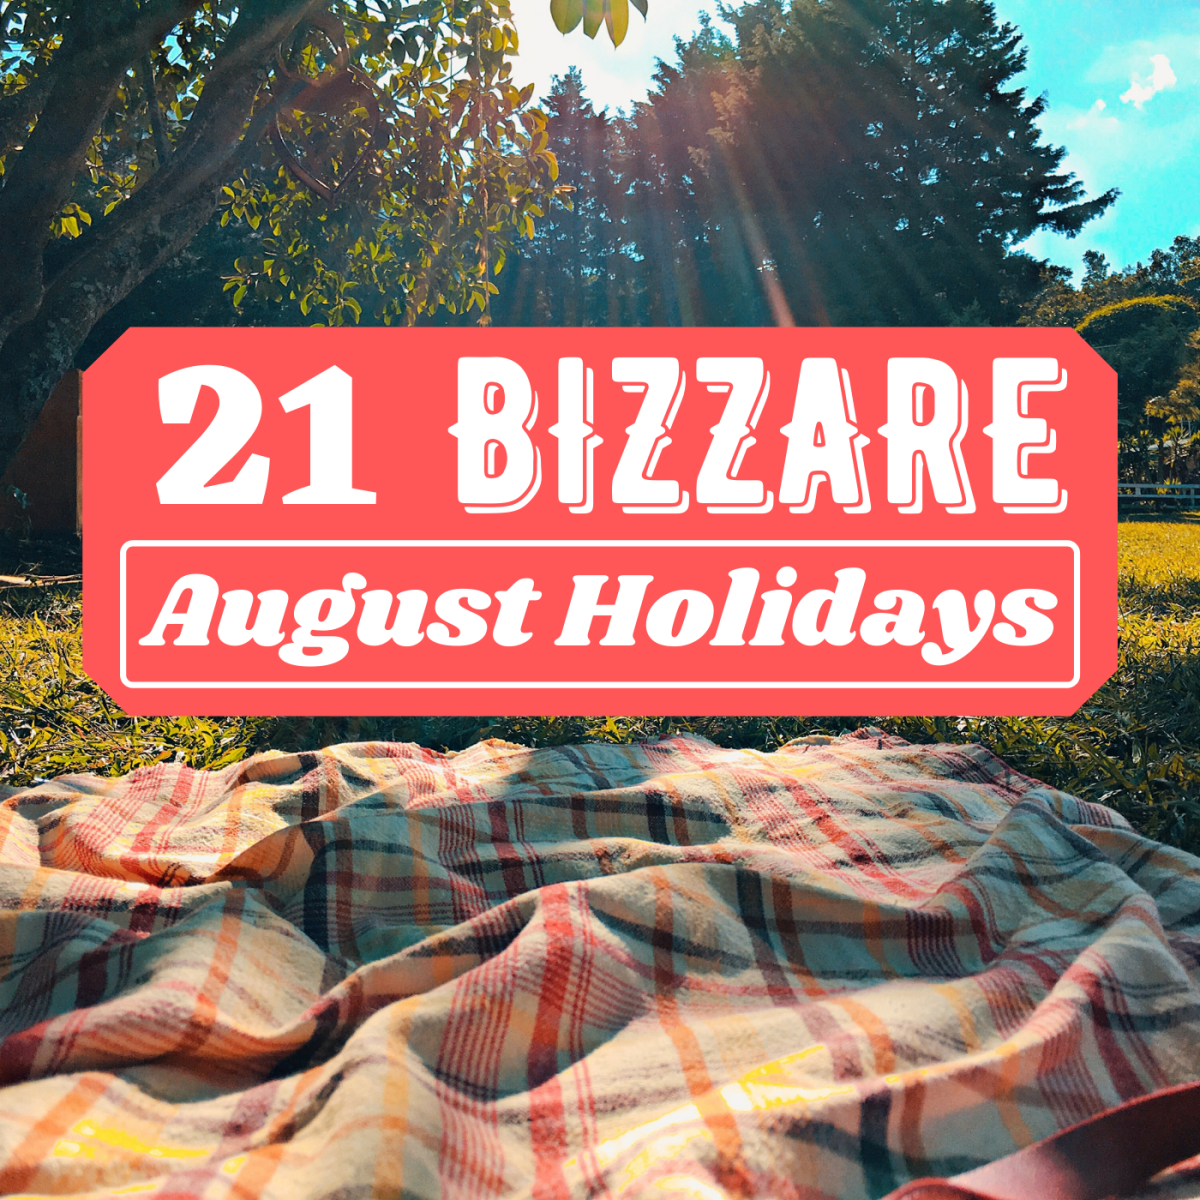 Thought there were no holidays or special occasions in August? Think again!